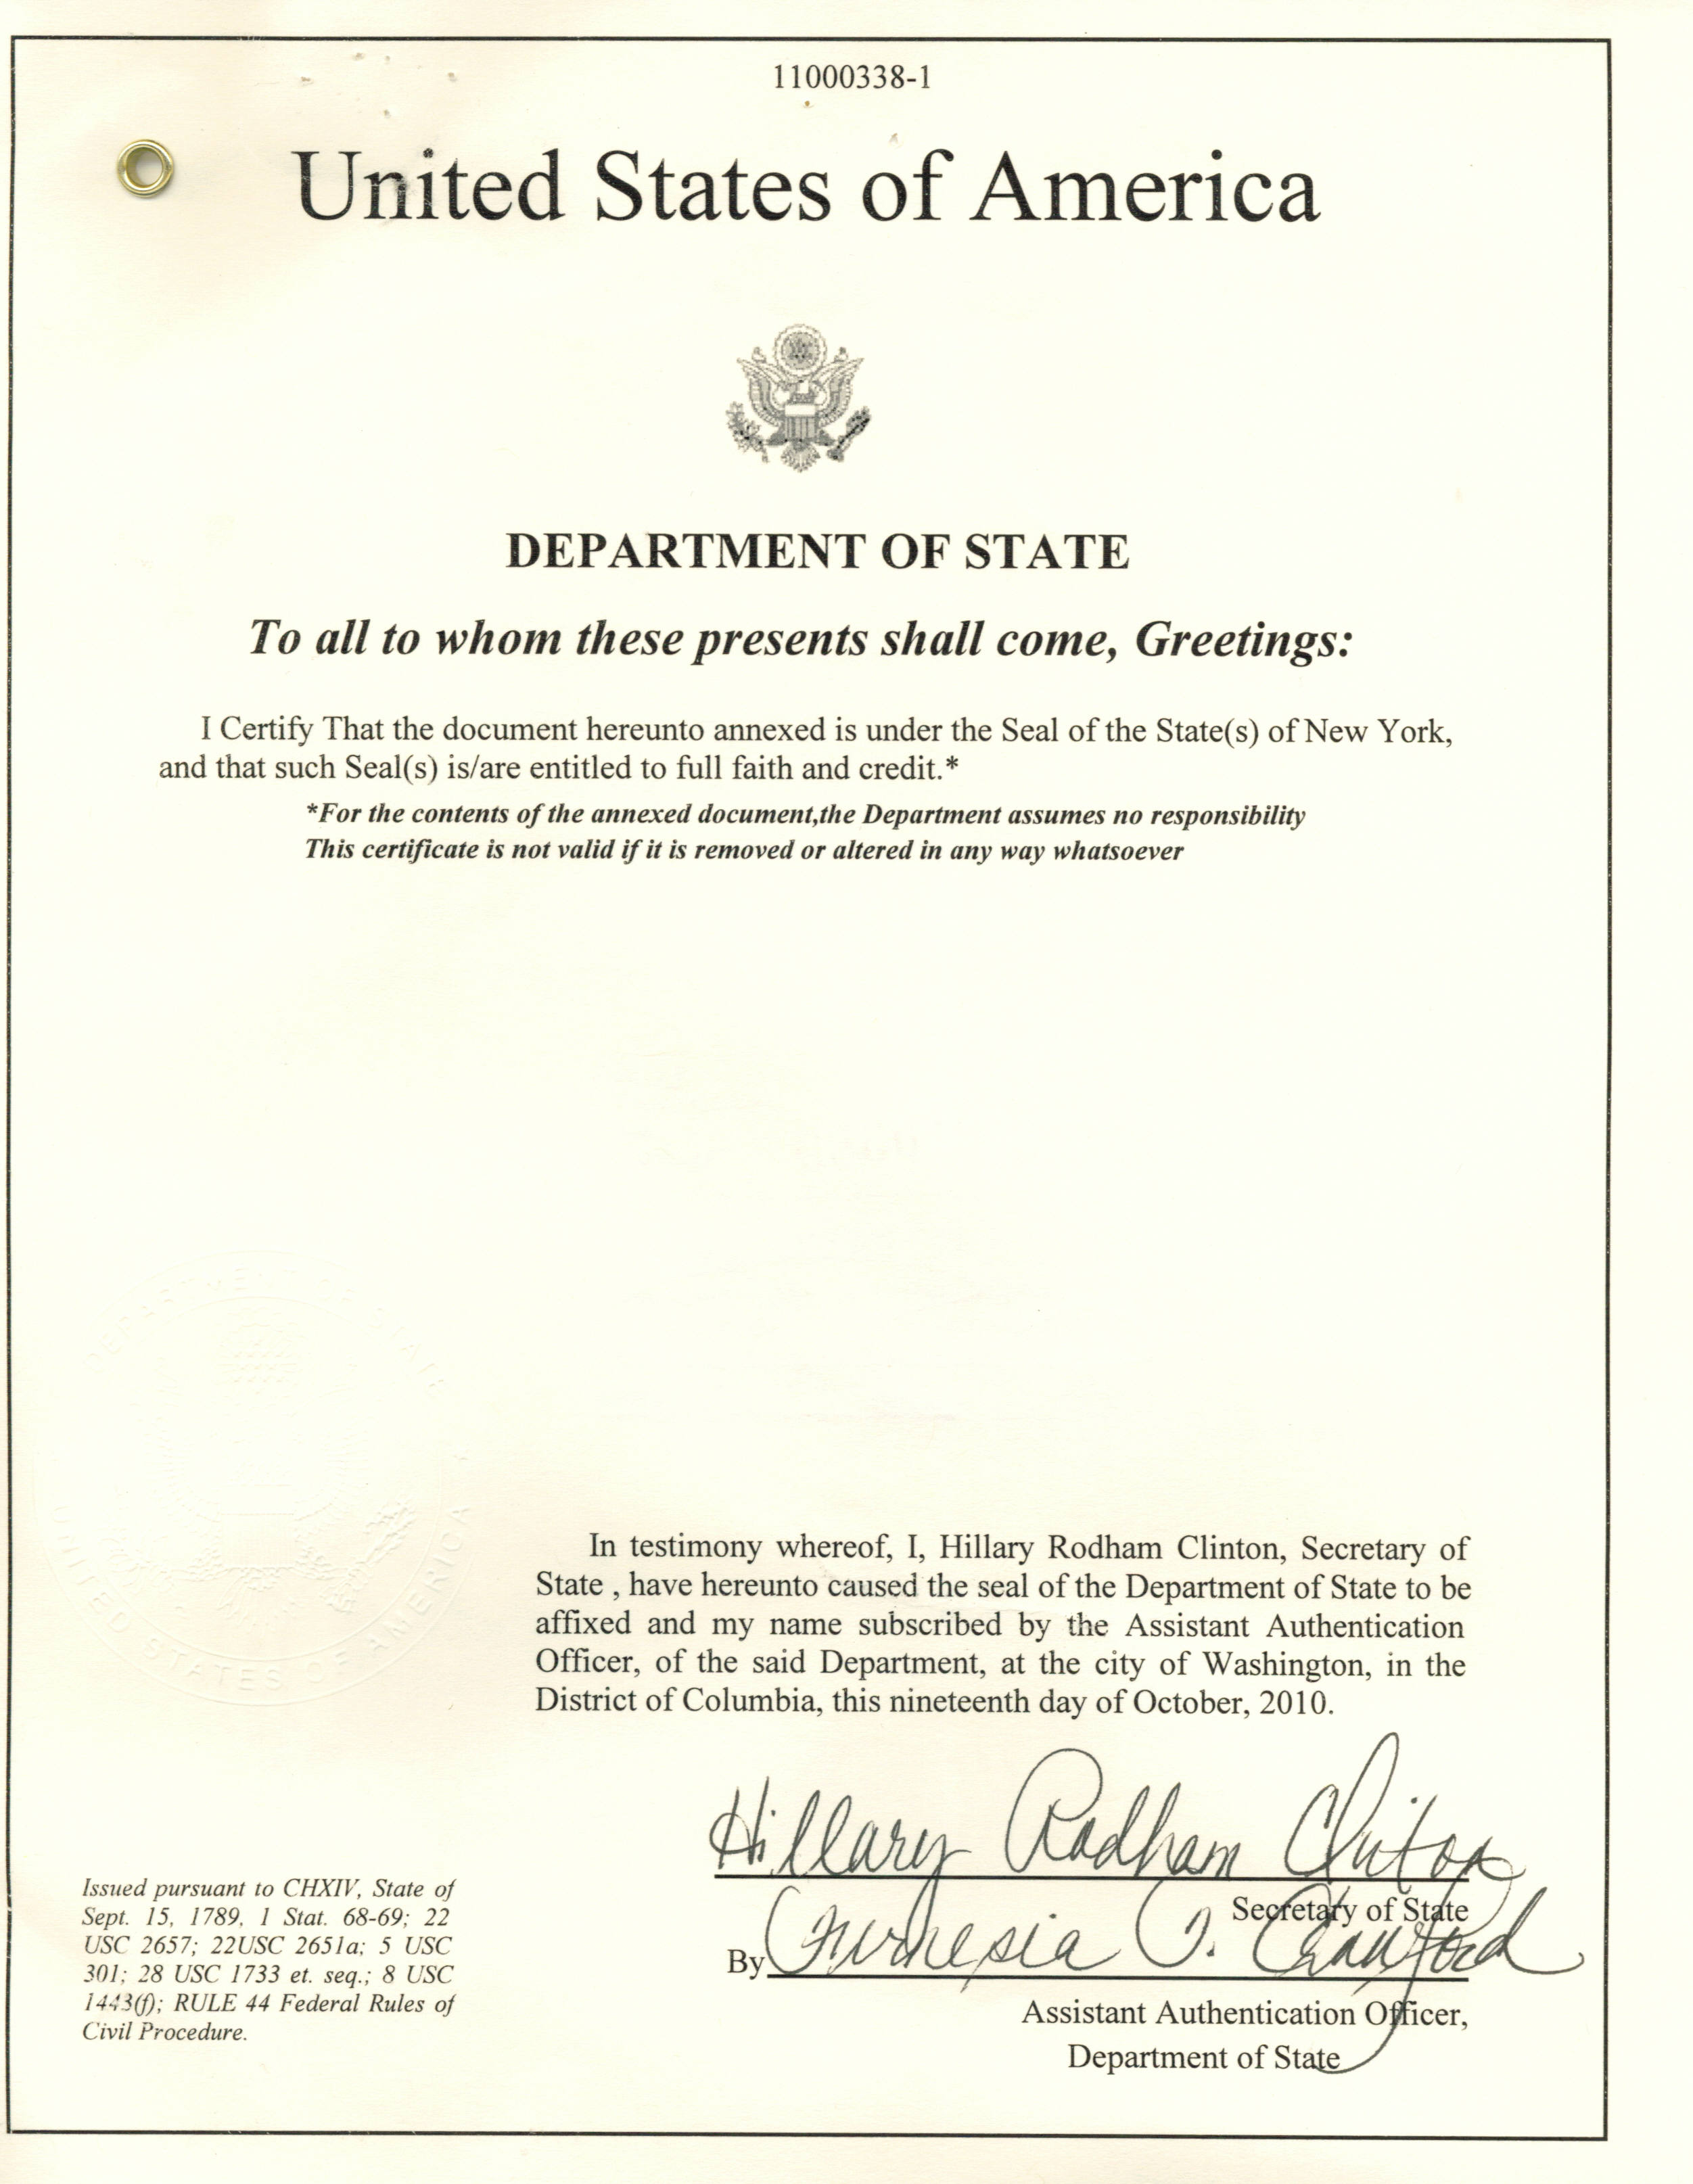 Same day nys apostille nyc apostille manhattan for Us department of state authentications cover letter